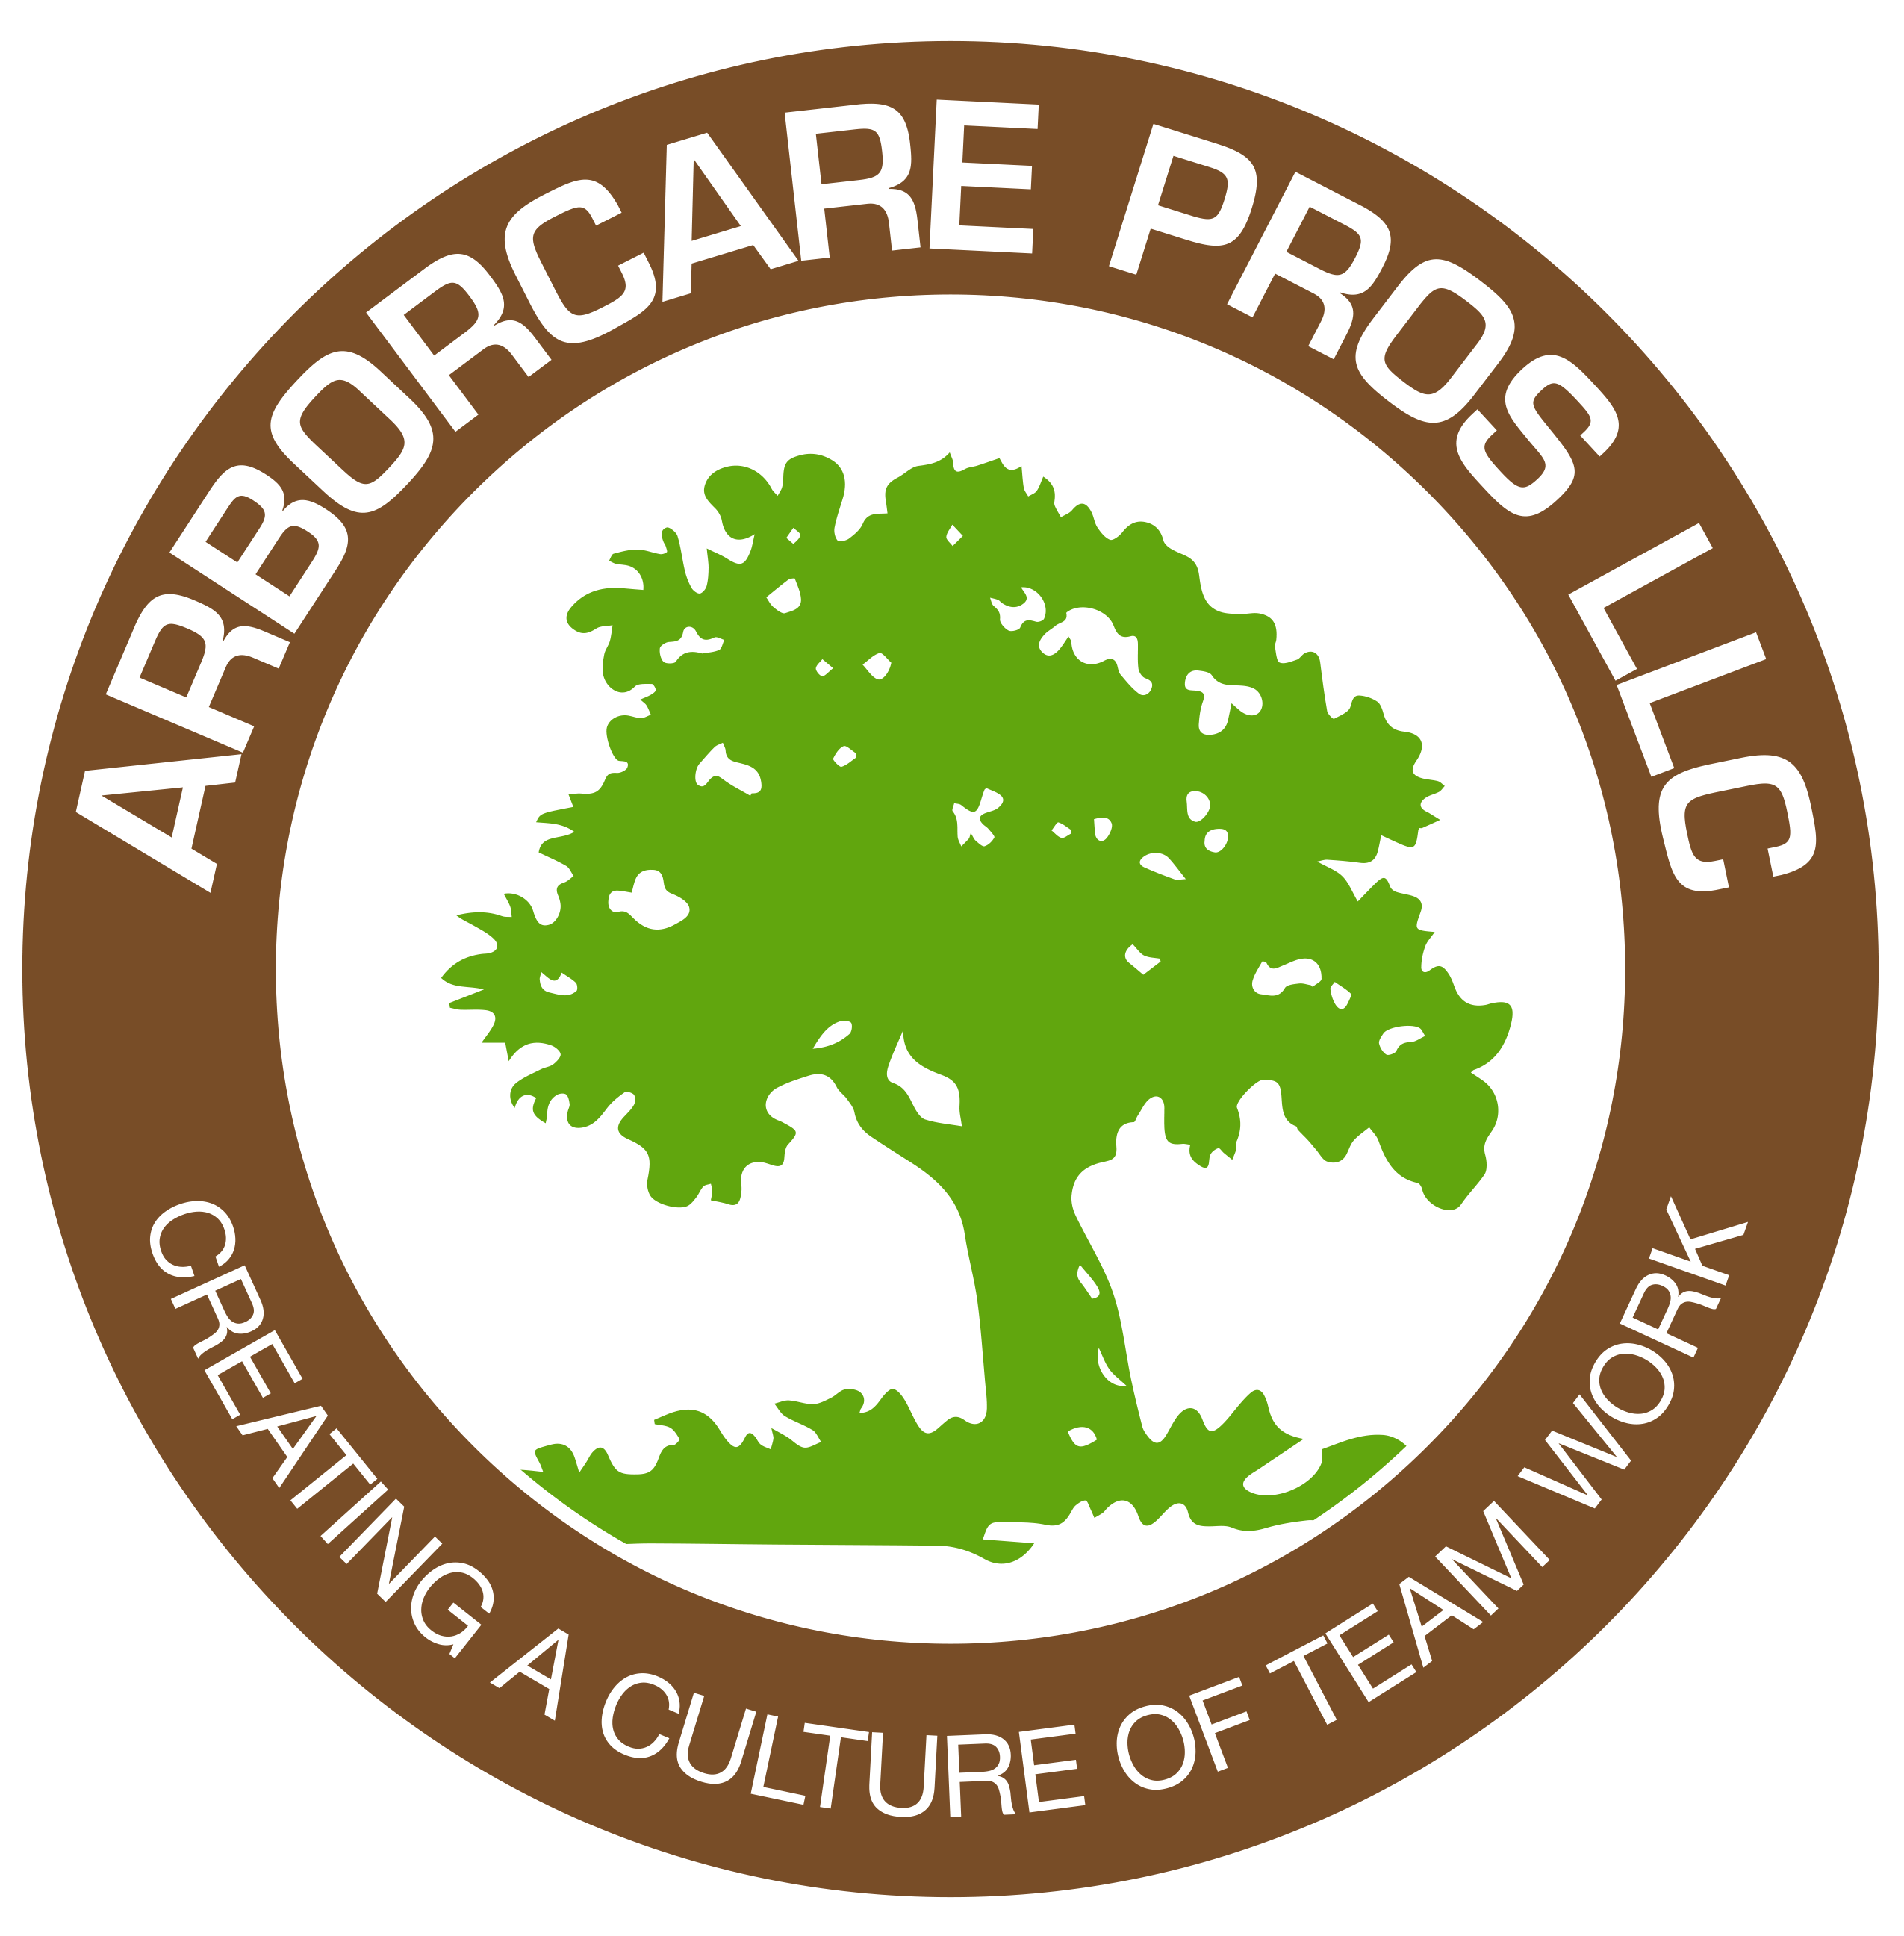 Tree pruning clipart png free About Us | Arbor Care Pros png free